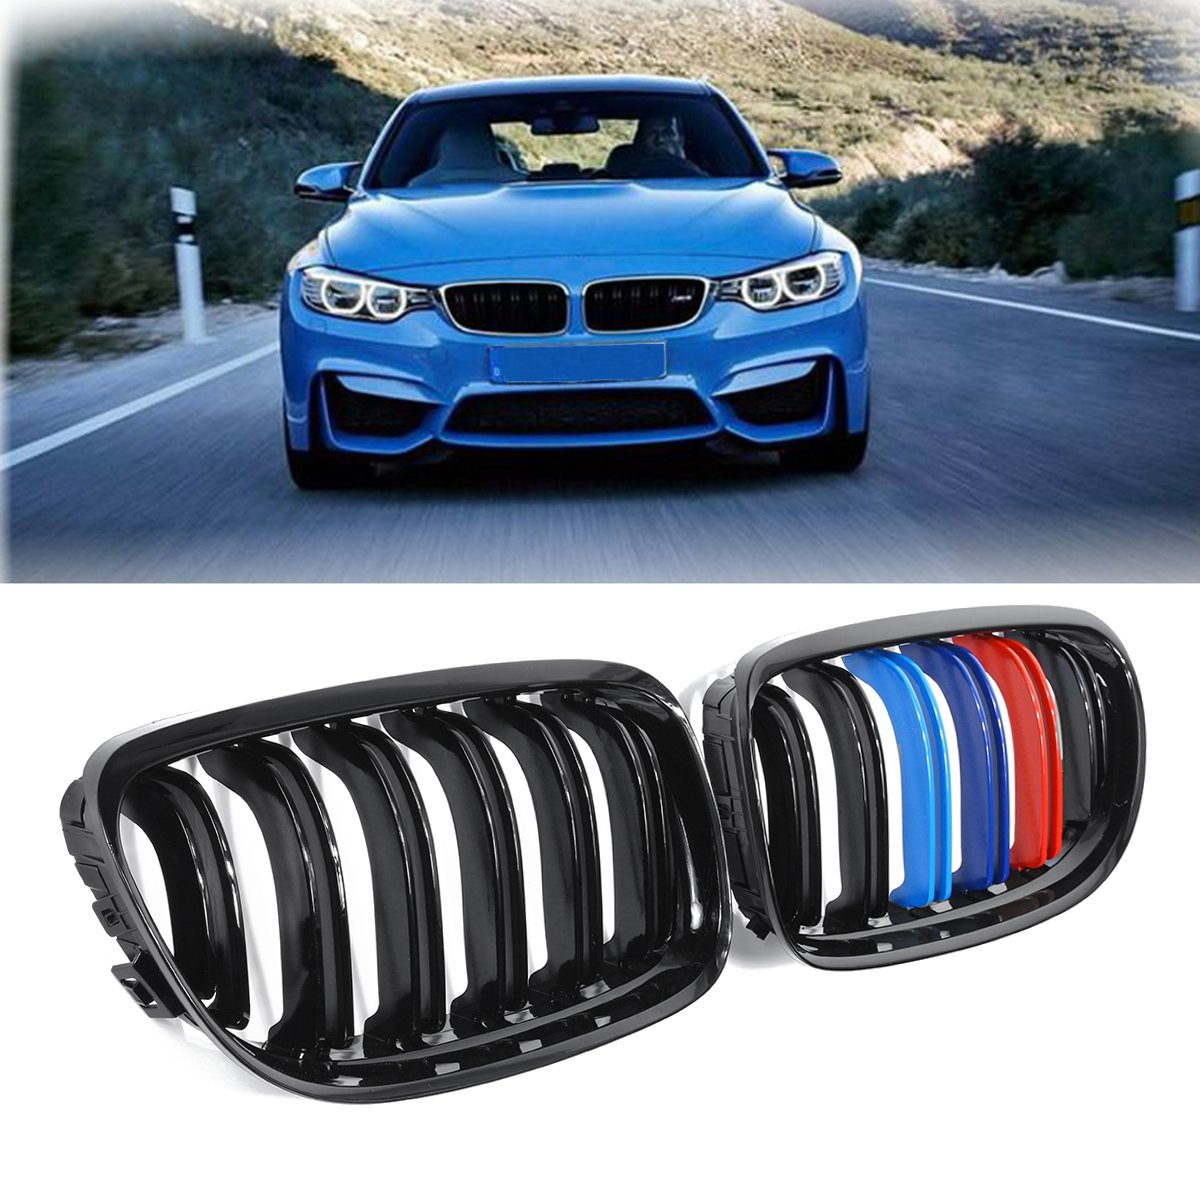 For BMW E90 2008 2009 2010 2011 Pair New ABS Gloss Black M-Color 2 Line Double Slat Front Kidney Grill GrilleFor BMW E90 2008 2009 2010 2011 Pair New ABS Gloss Black M-Color 2 Line Double Slat Front Kidney Grill Grille